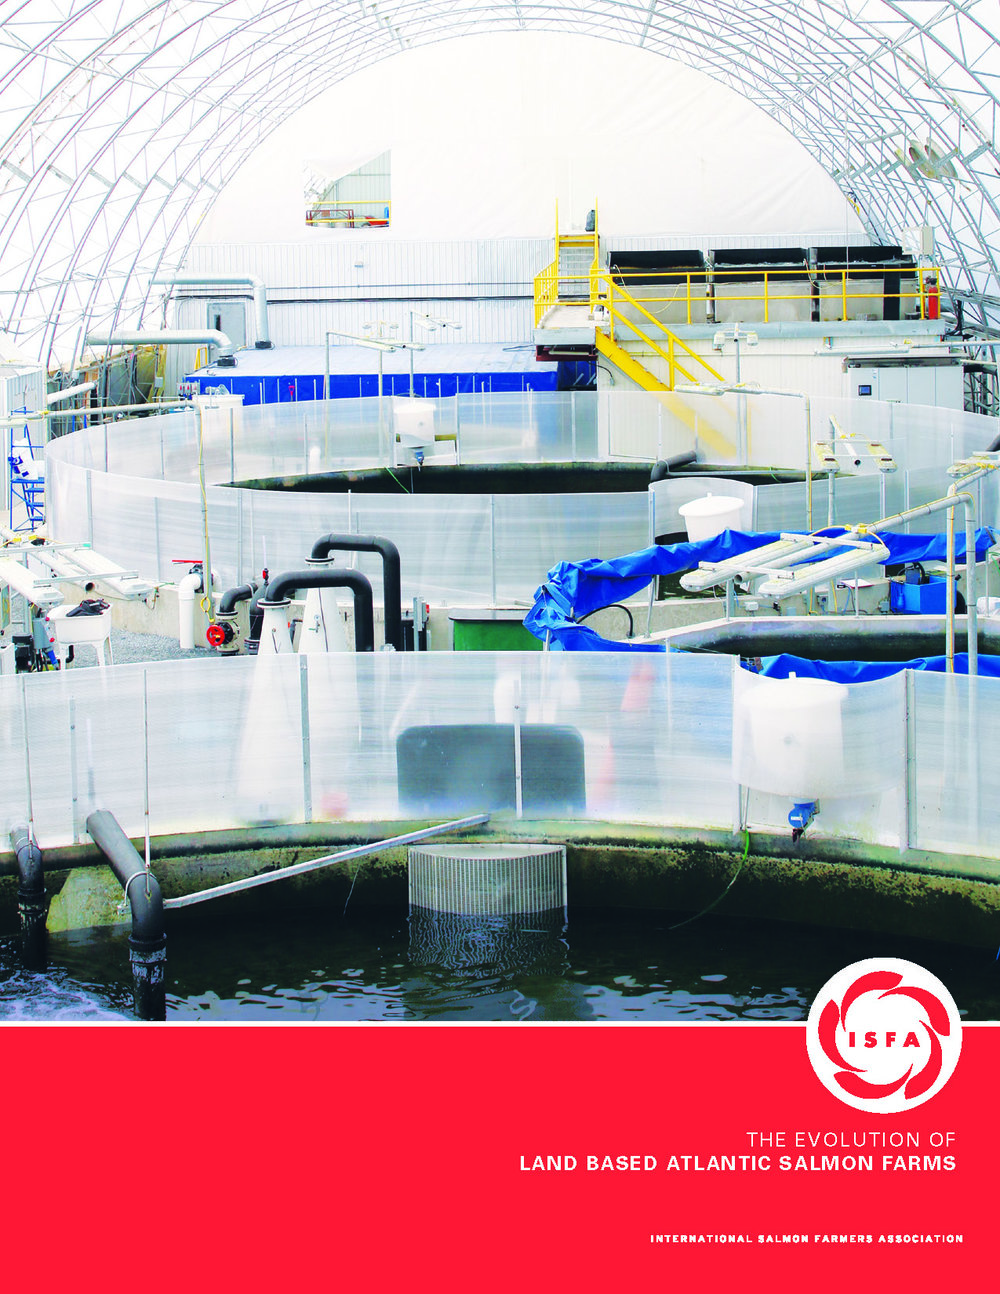 The Evolution of Land Based Atlantic Salmon Farms